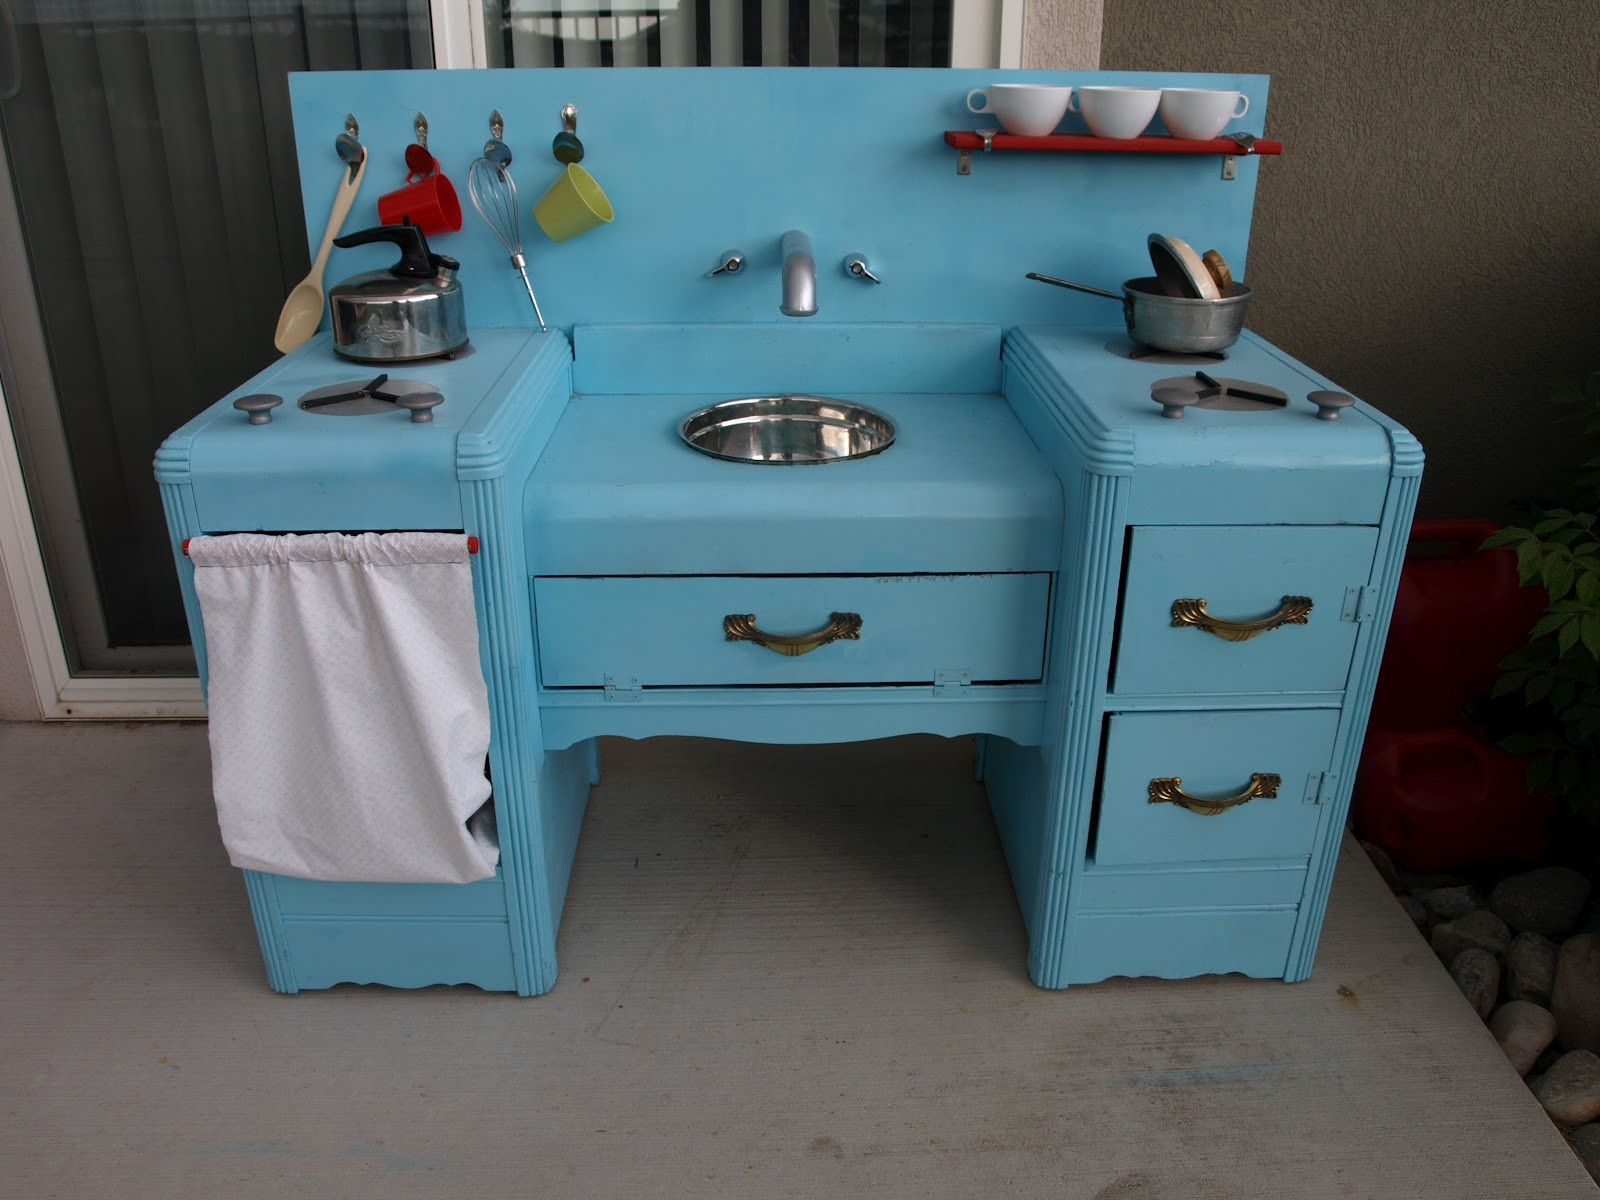 We Love Being Moms!: Homemade Kids Play Kitchen!